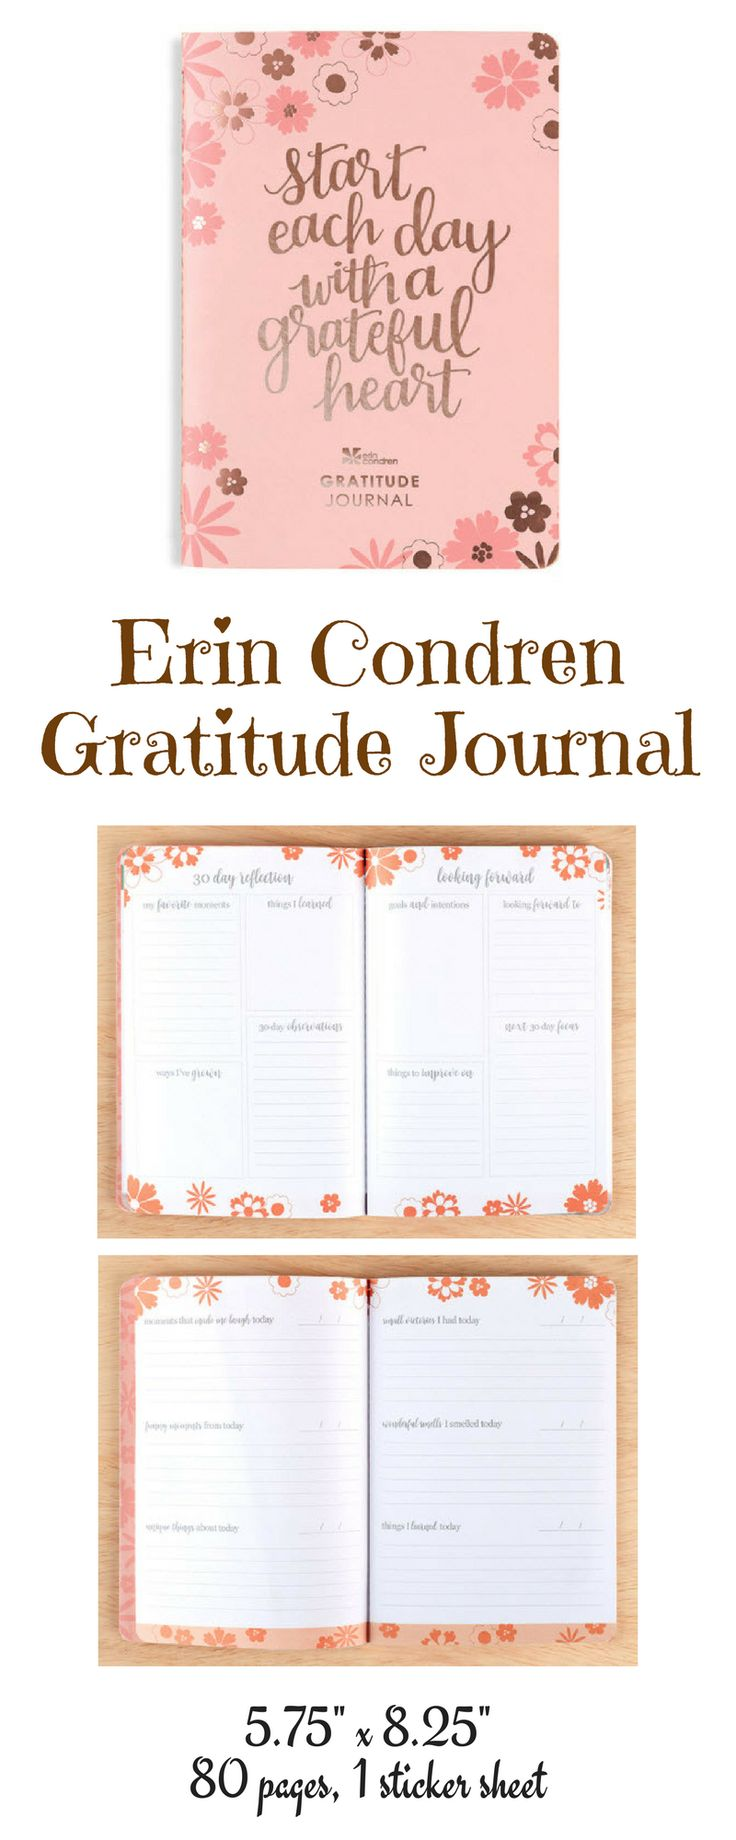 Start your new year off right by keeping a gratitude journal! Take a look! #ad #erincondren #gratitude #journal #newyearresolution